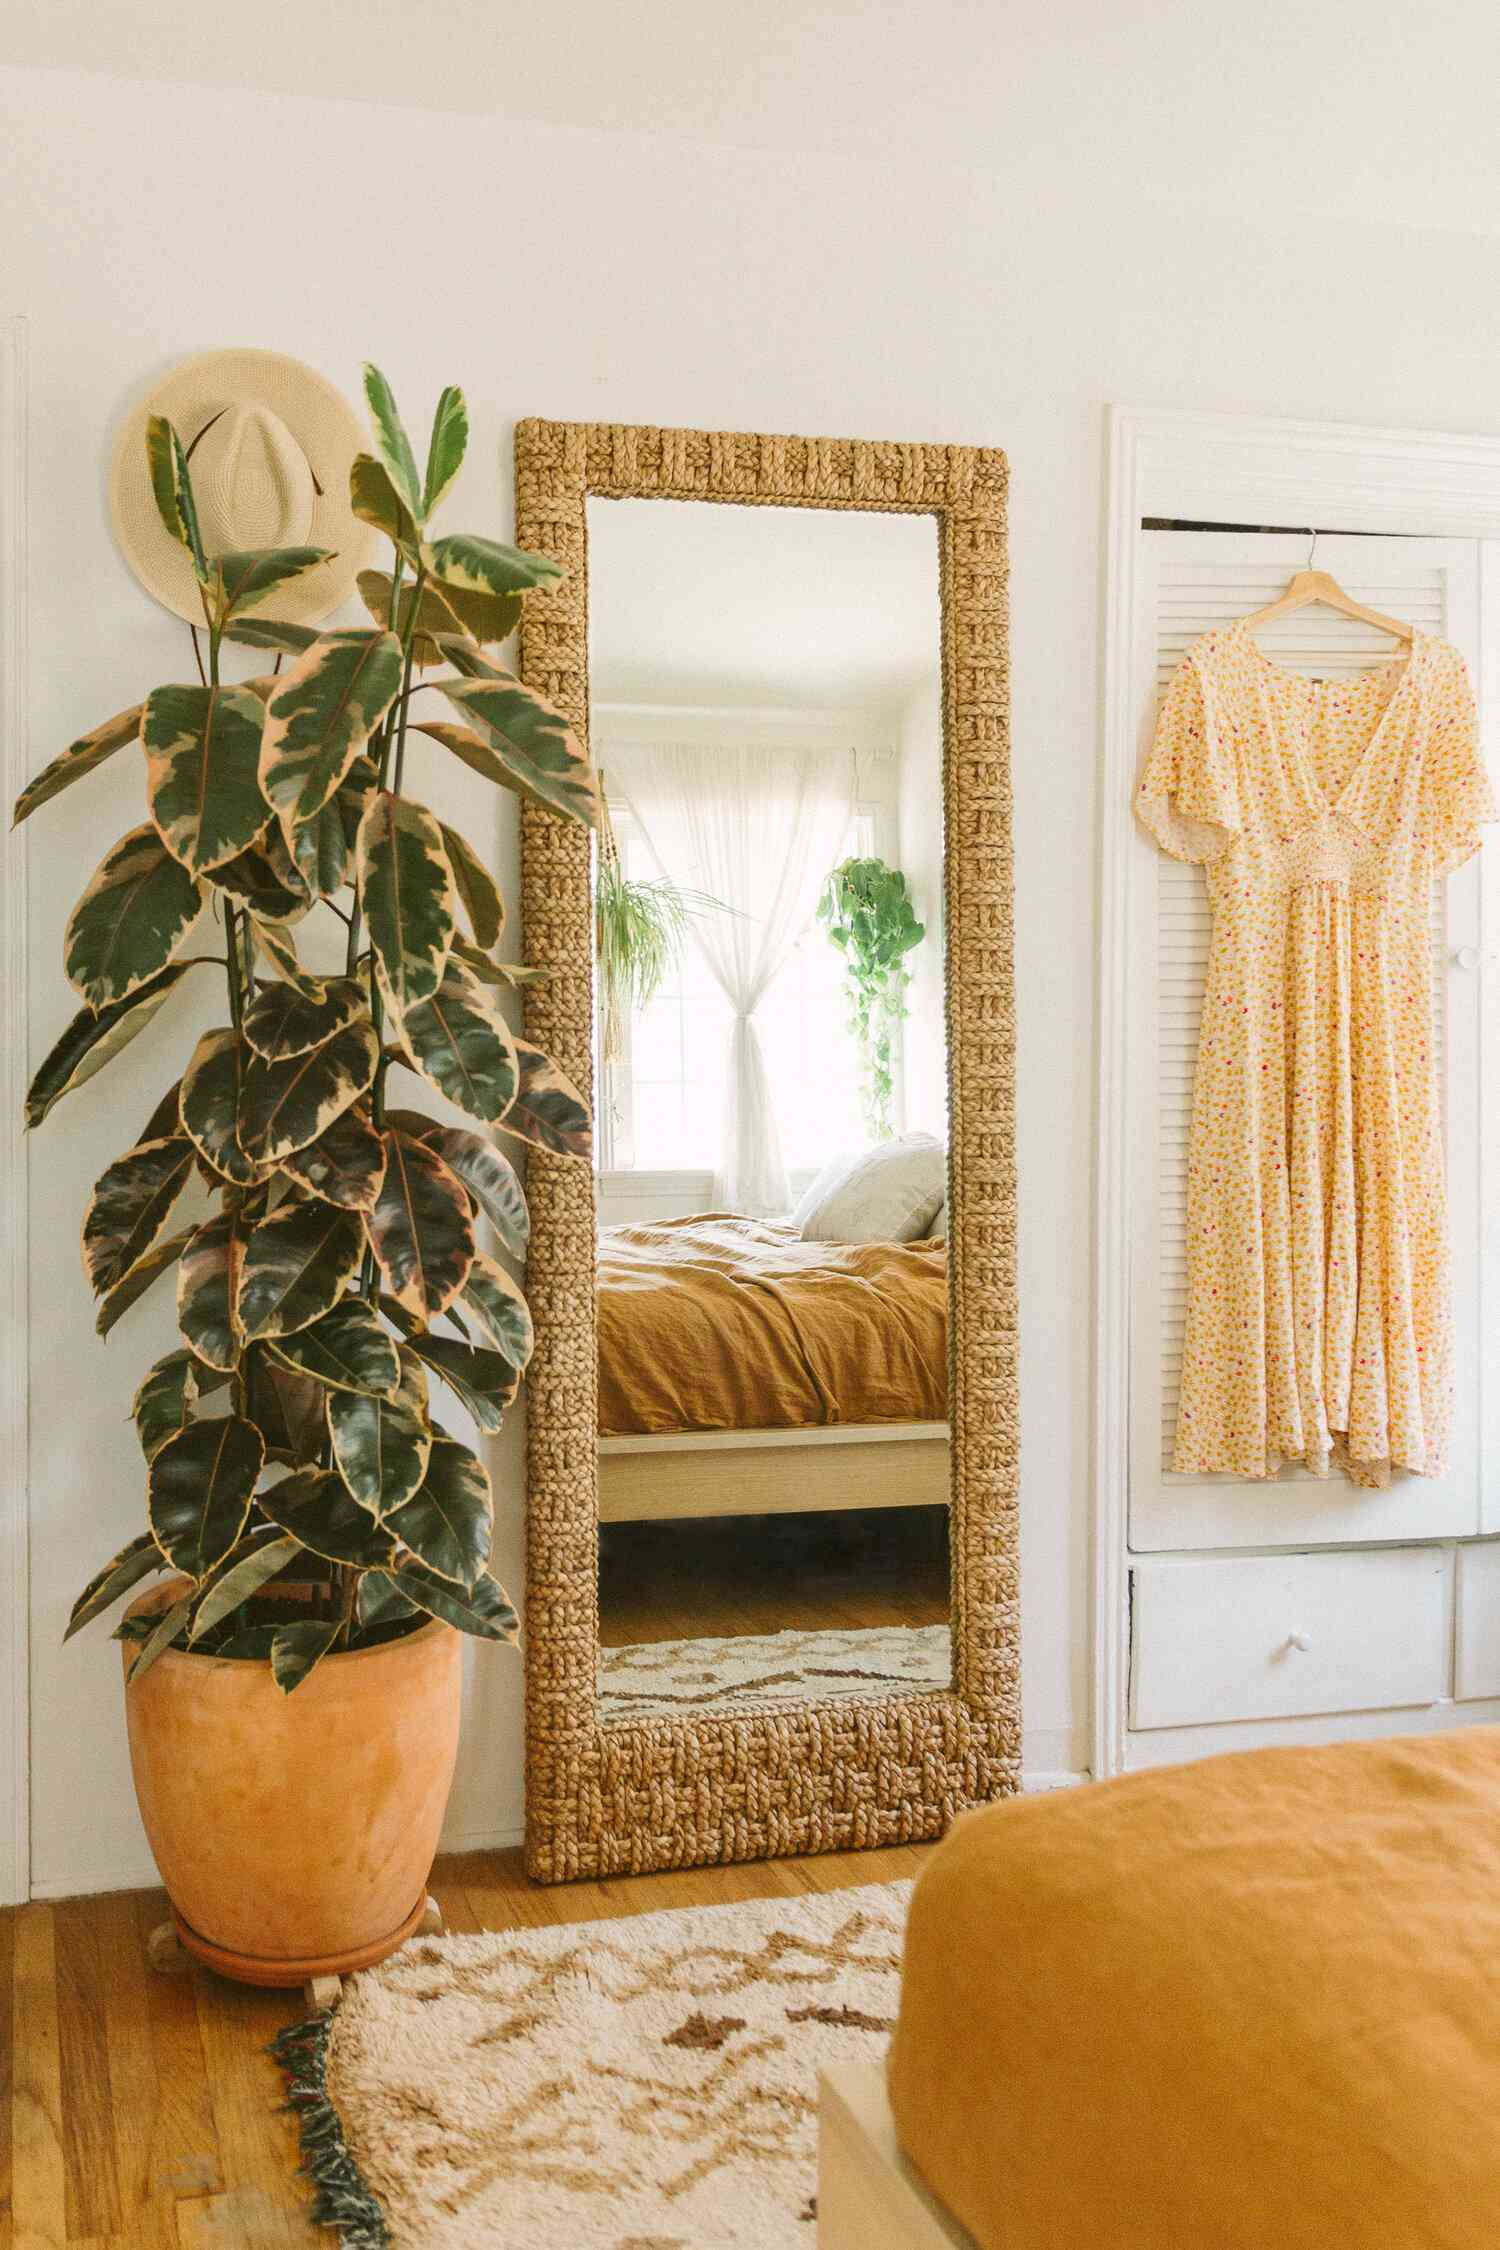 Rubber tree next to a tall mirror in a boho bedroom